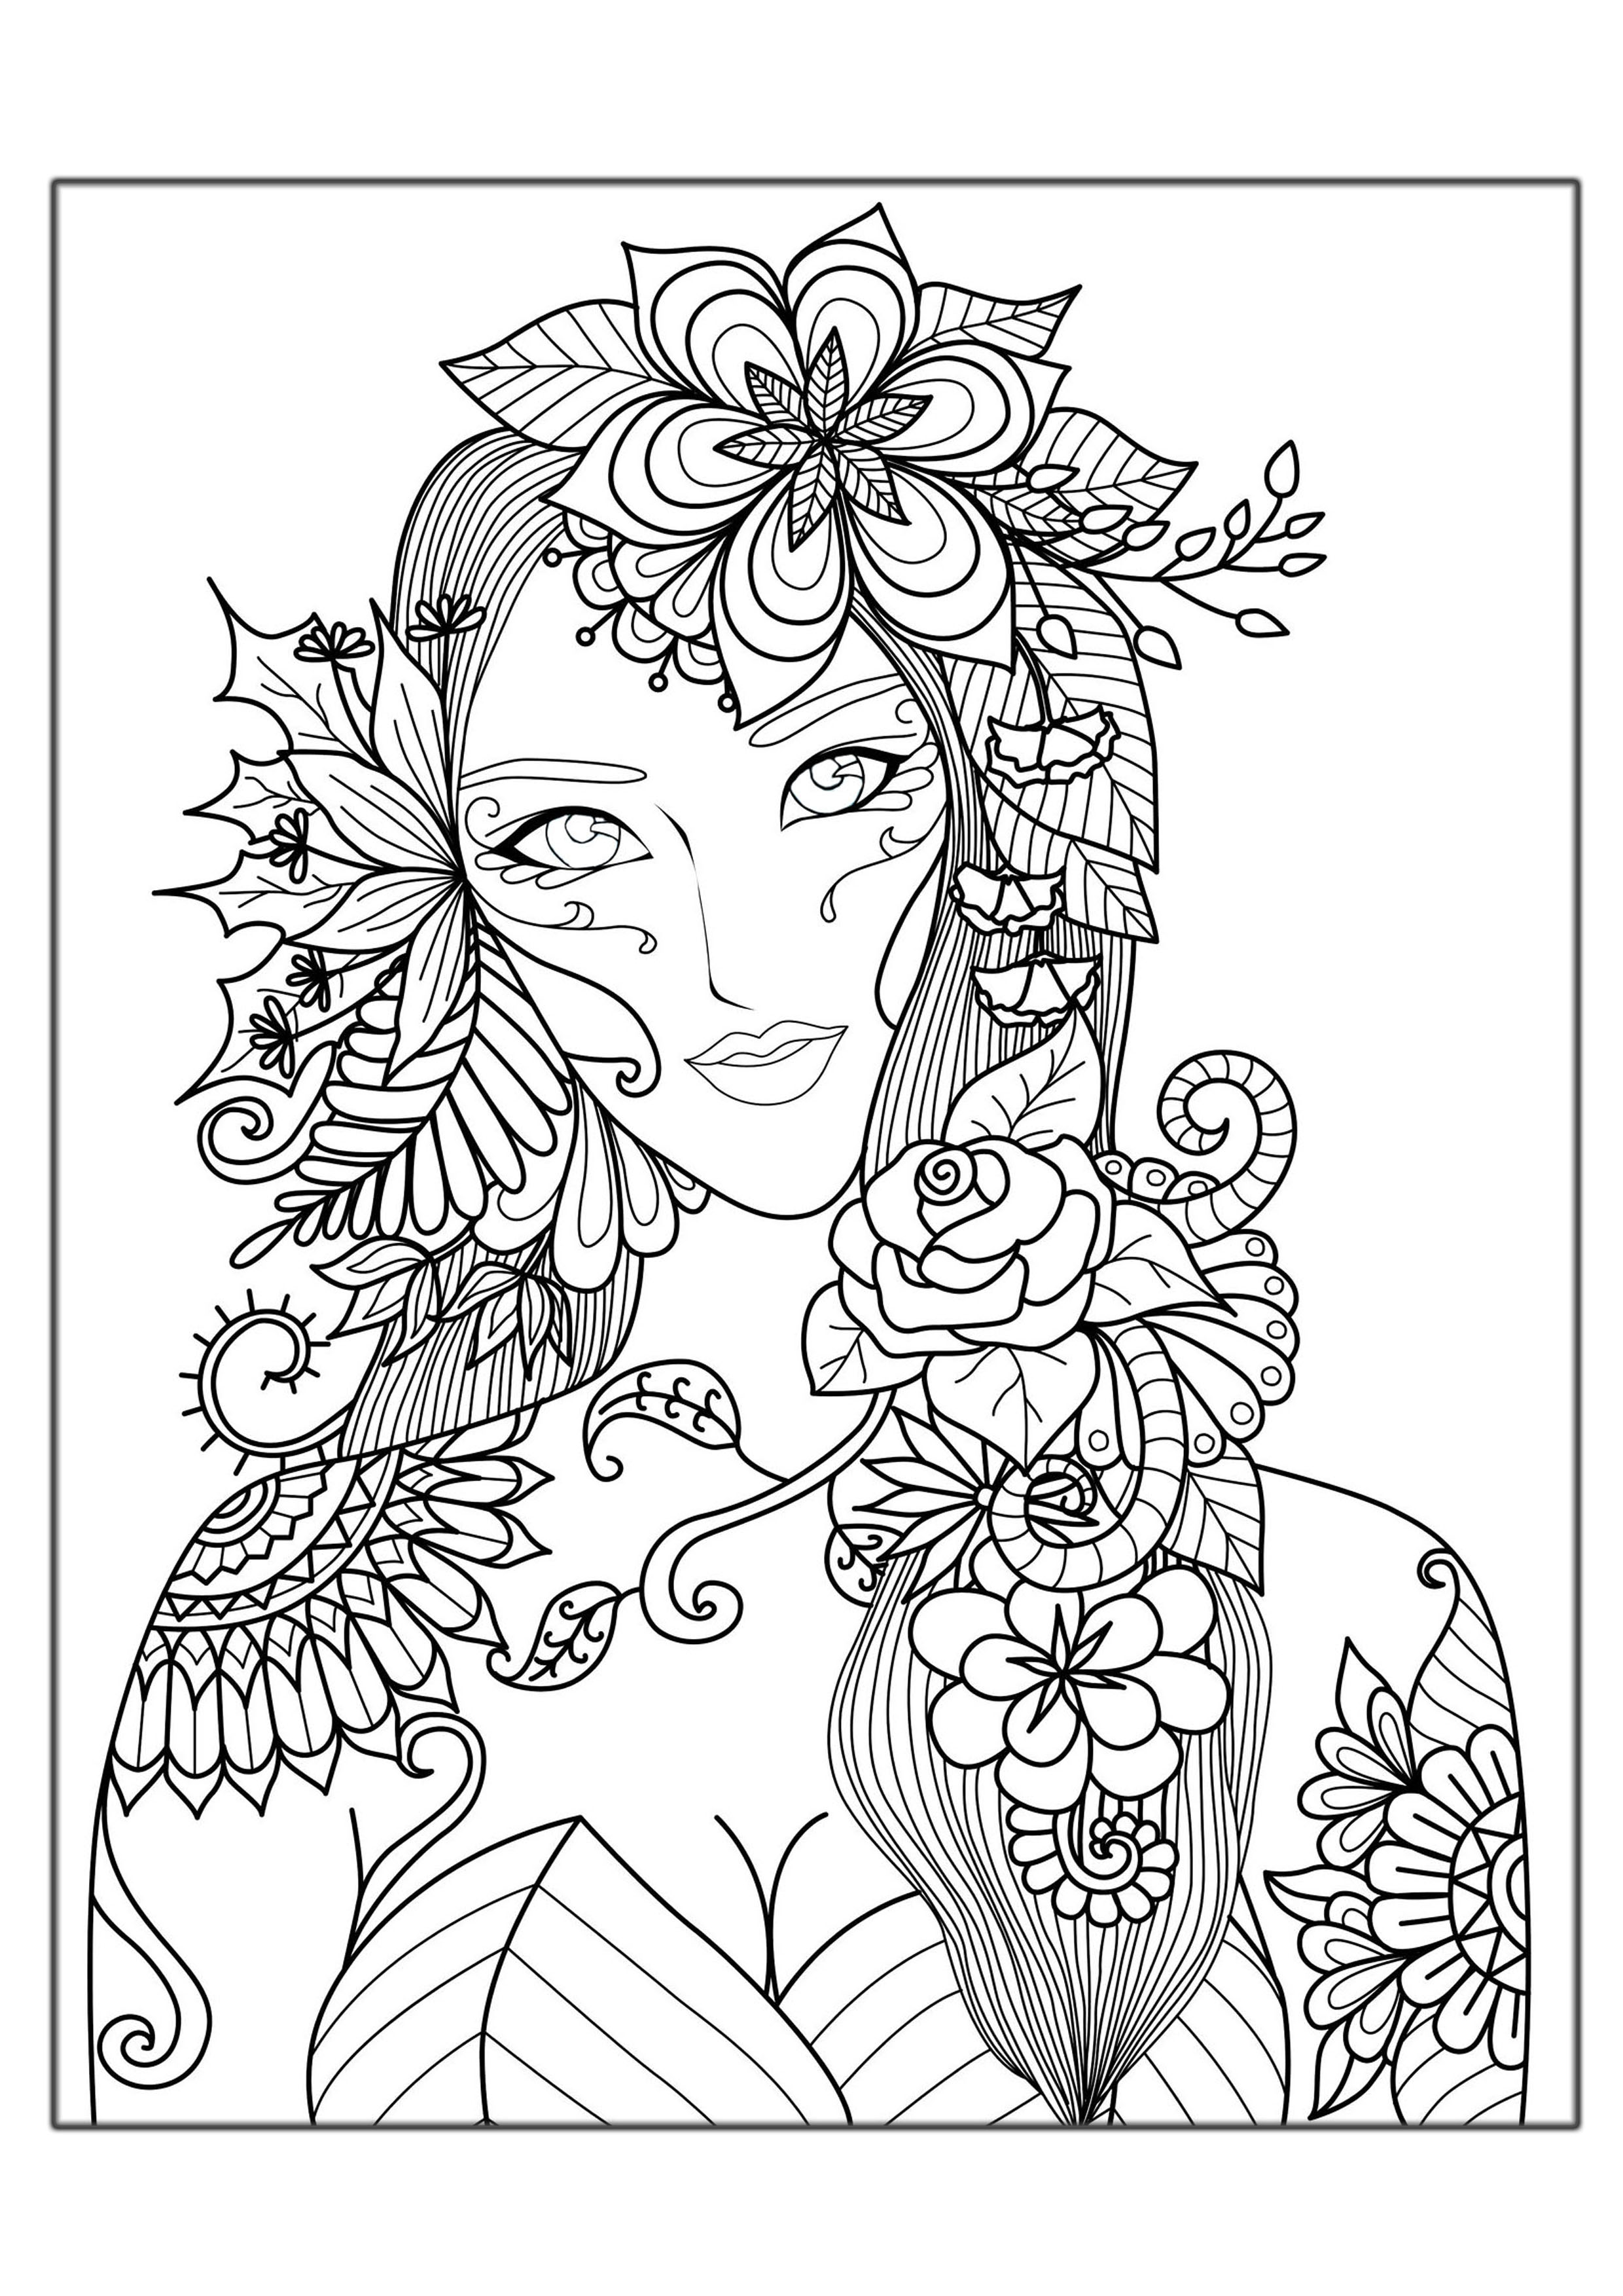 Coloring page adults woman flowers free to print